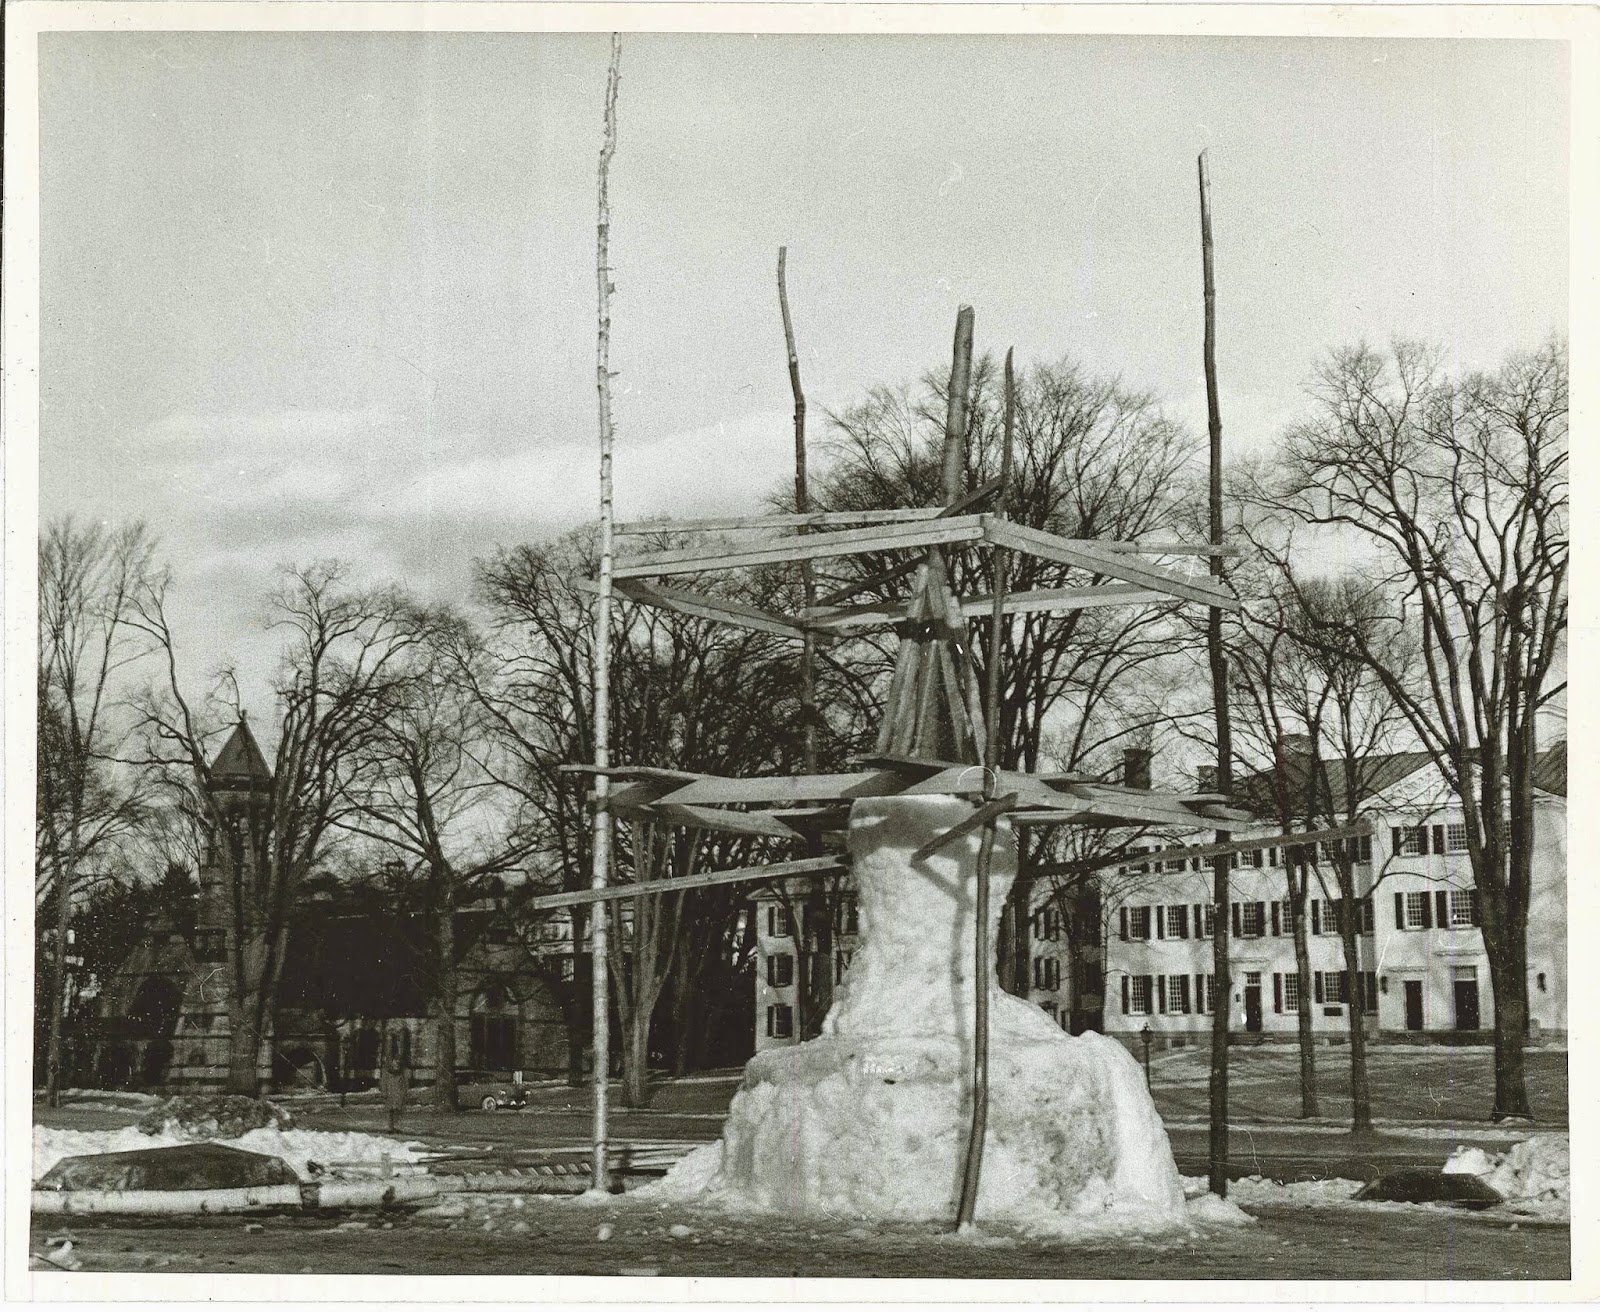 The unfinished sculpture surrounded by scaffolding.